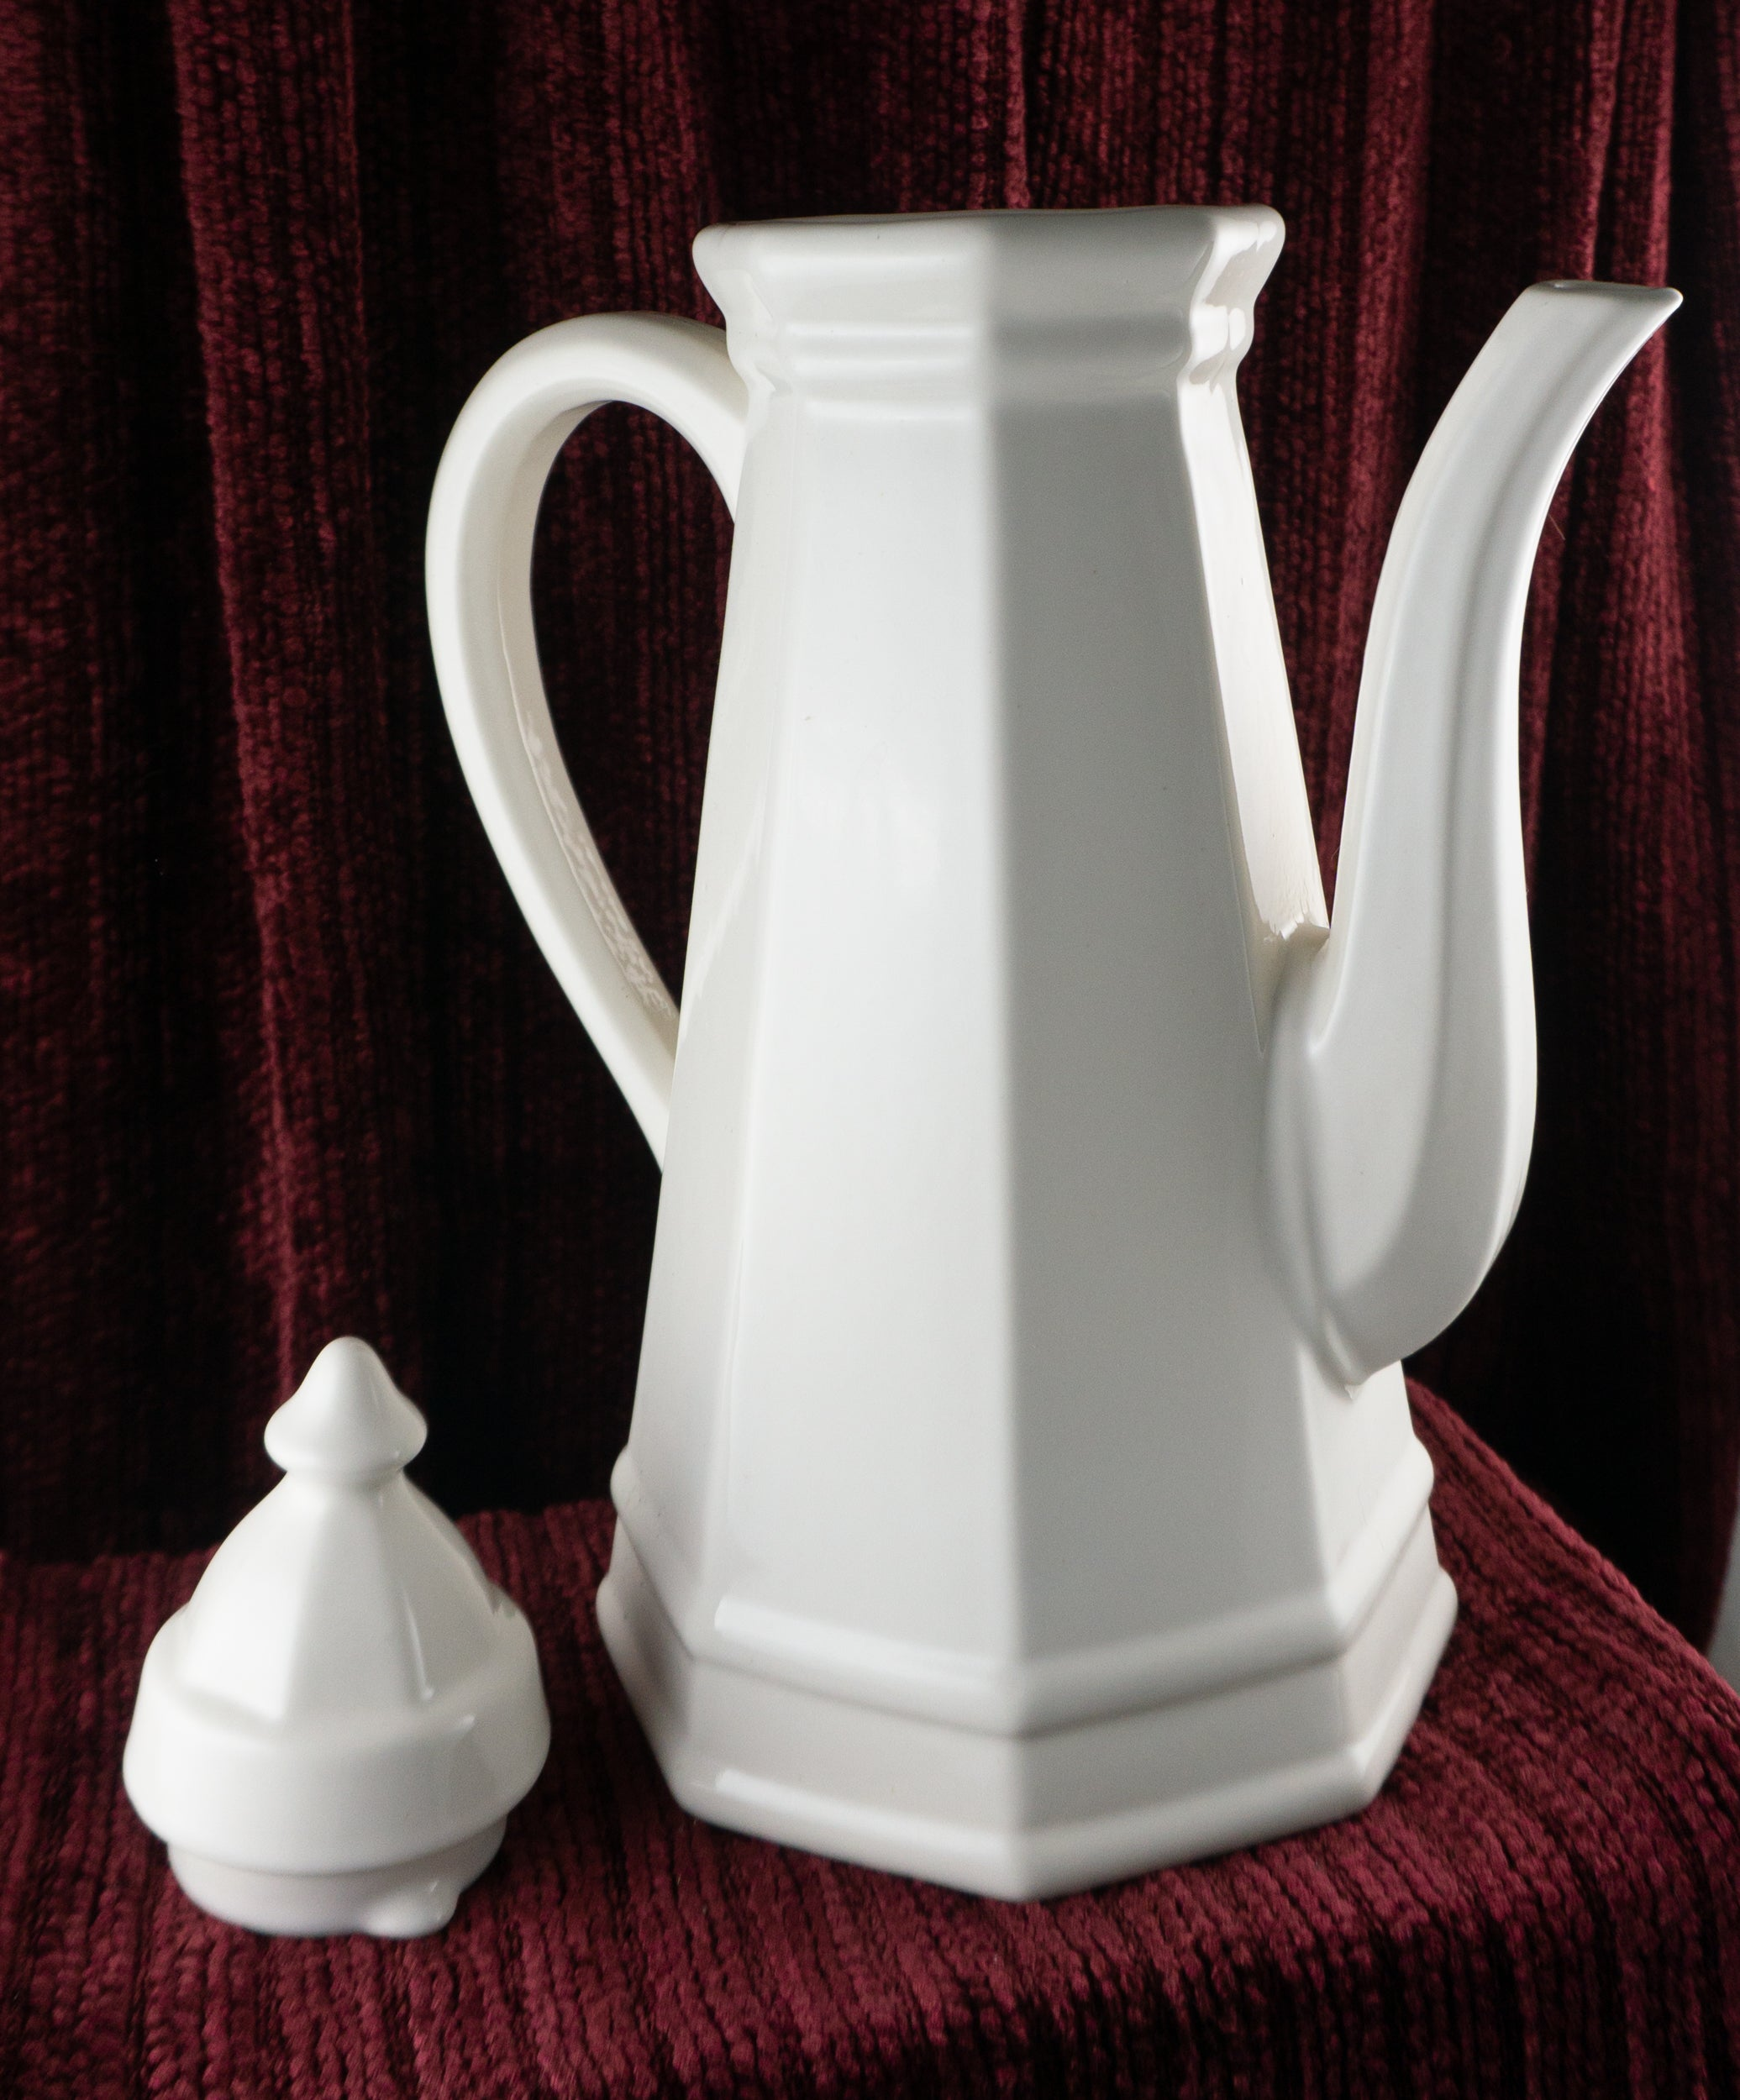 Nine Cup Coffee Pot & Lid Heritage White by PFALTZGRAFF